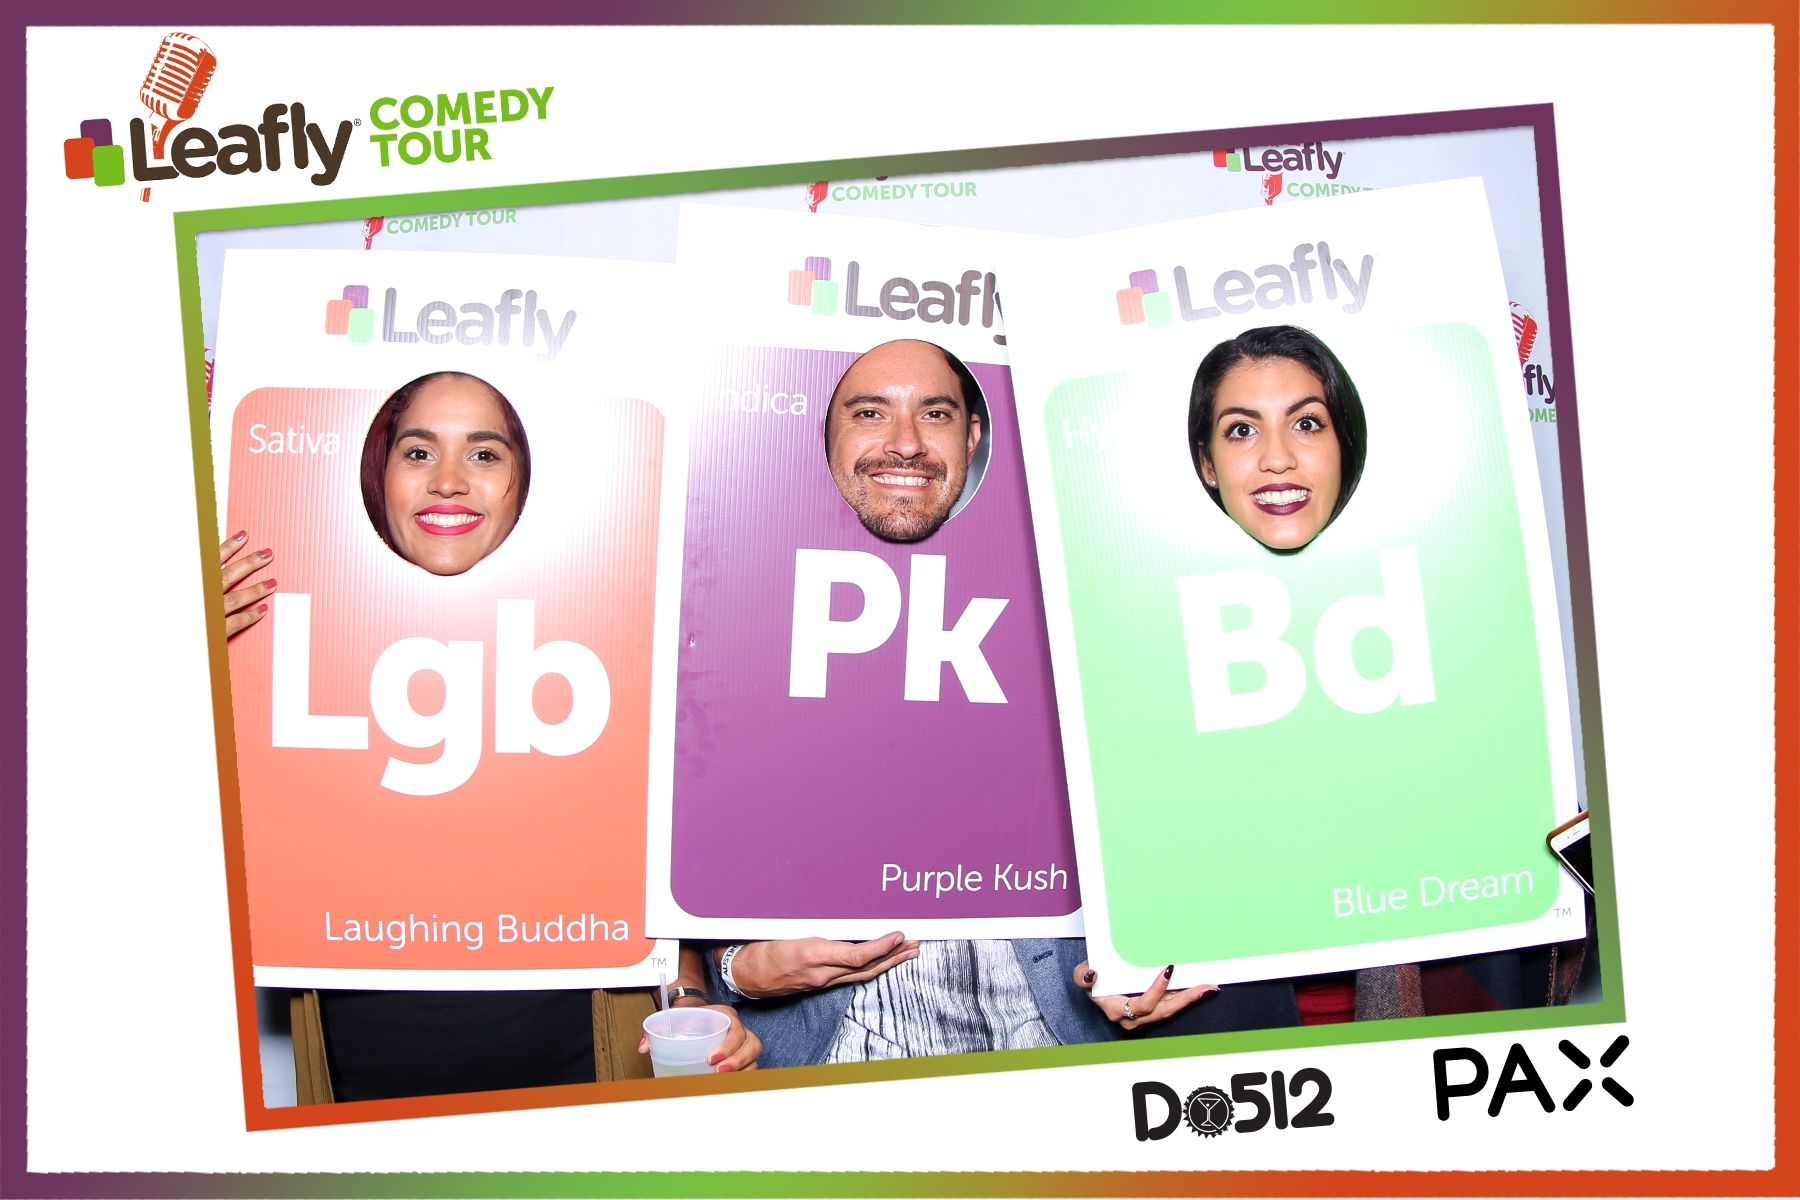 Leafly Comedy Tour_2016-11-10_21-49-18.jpg